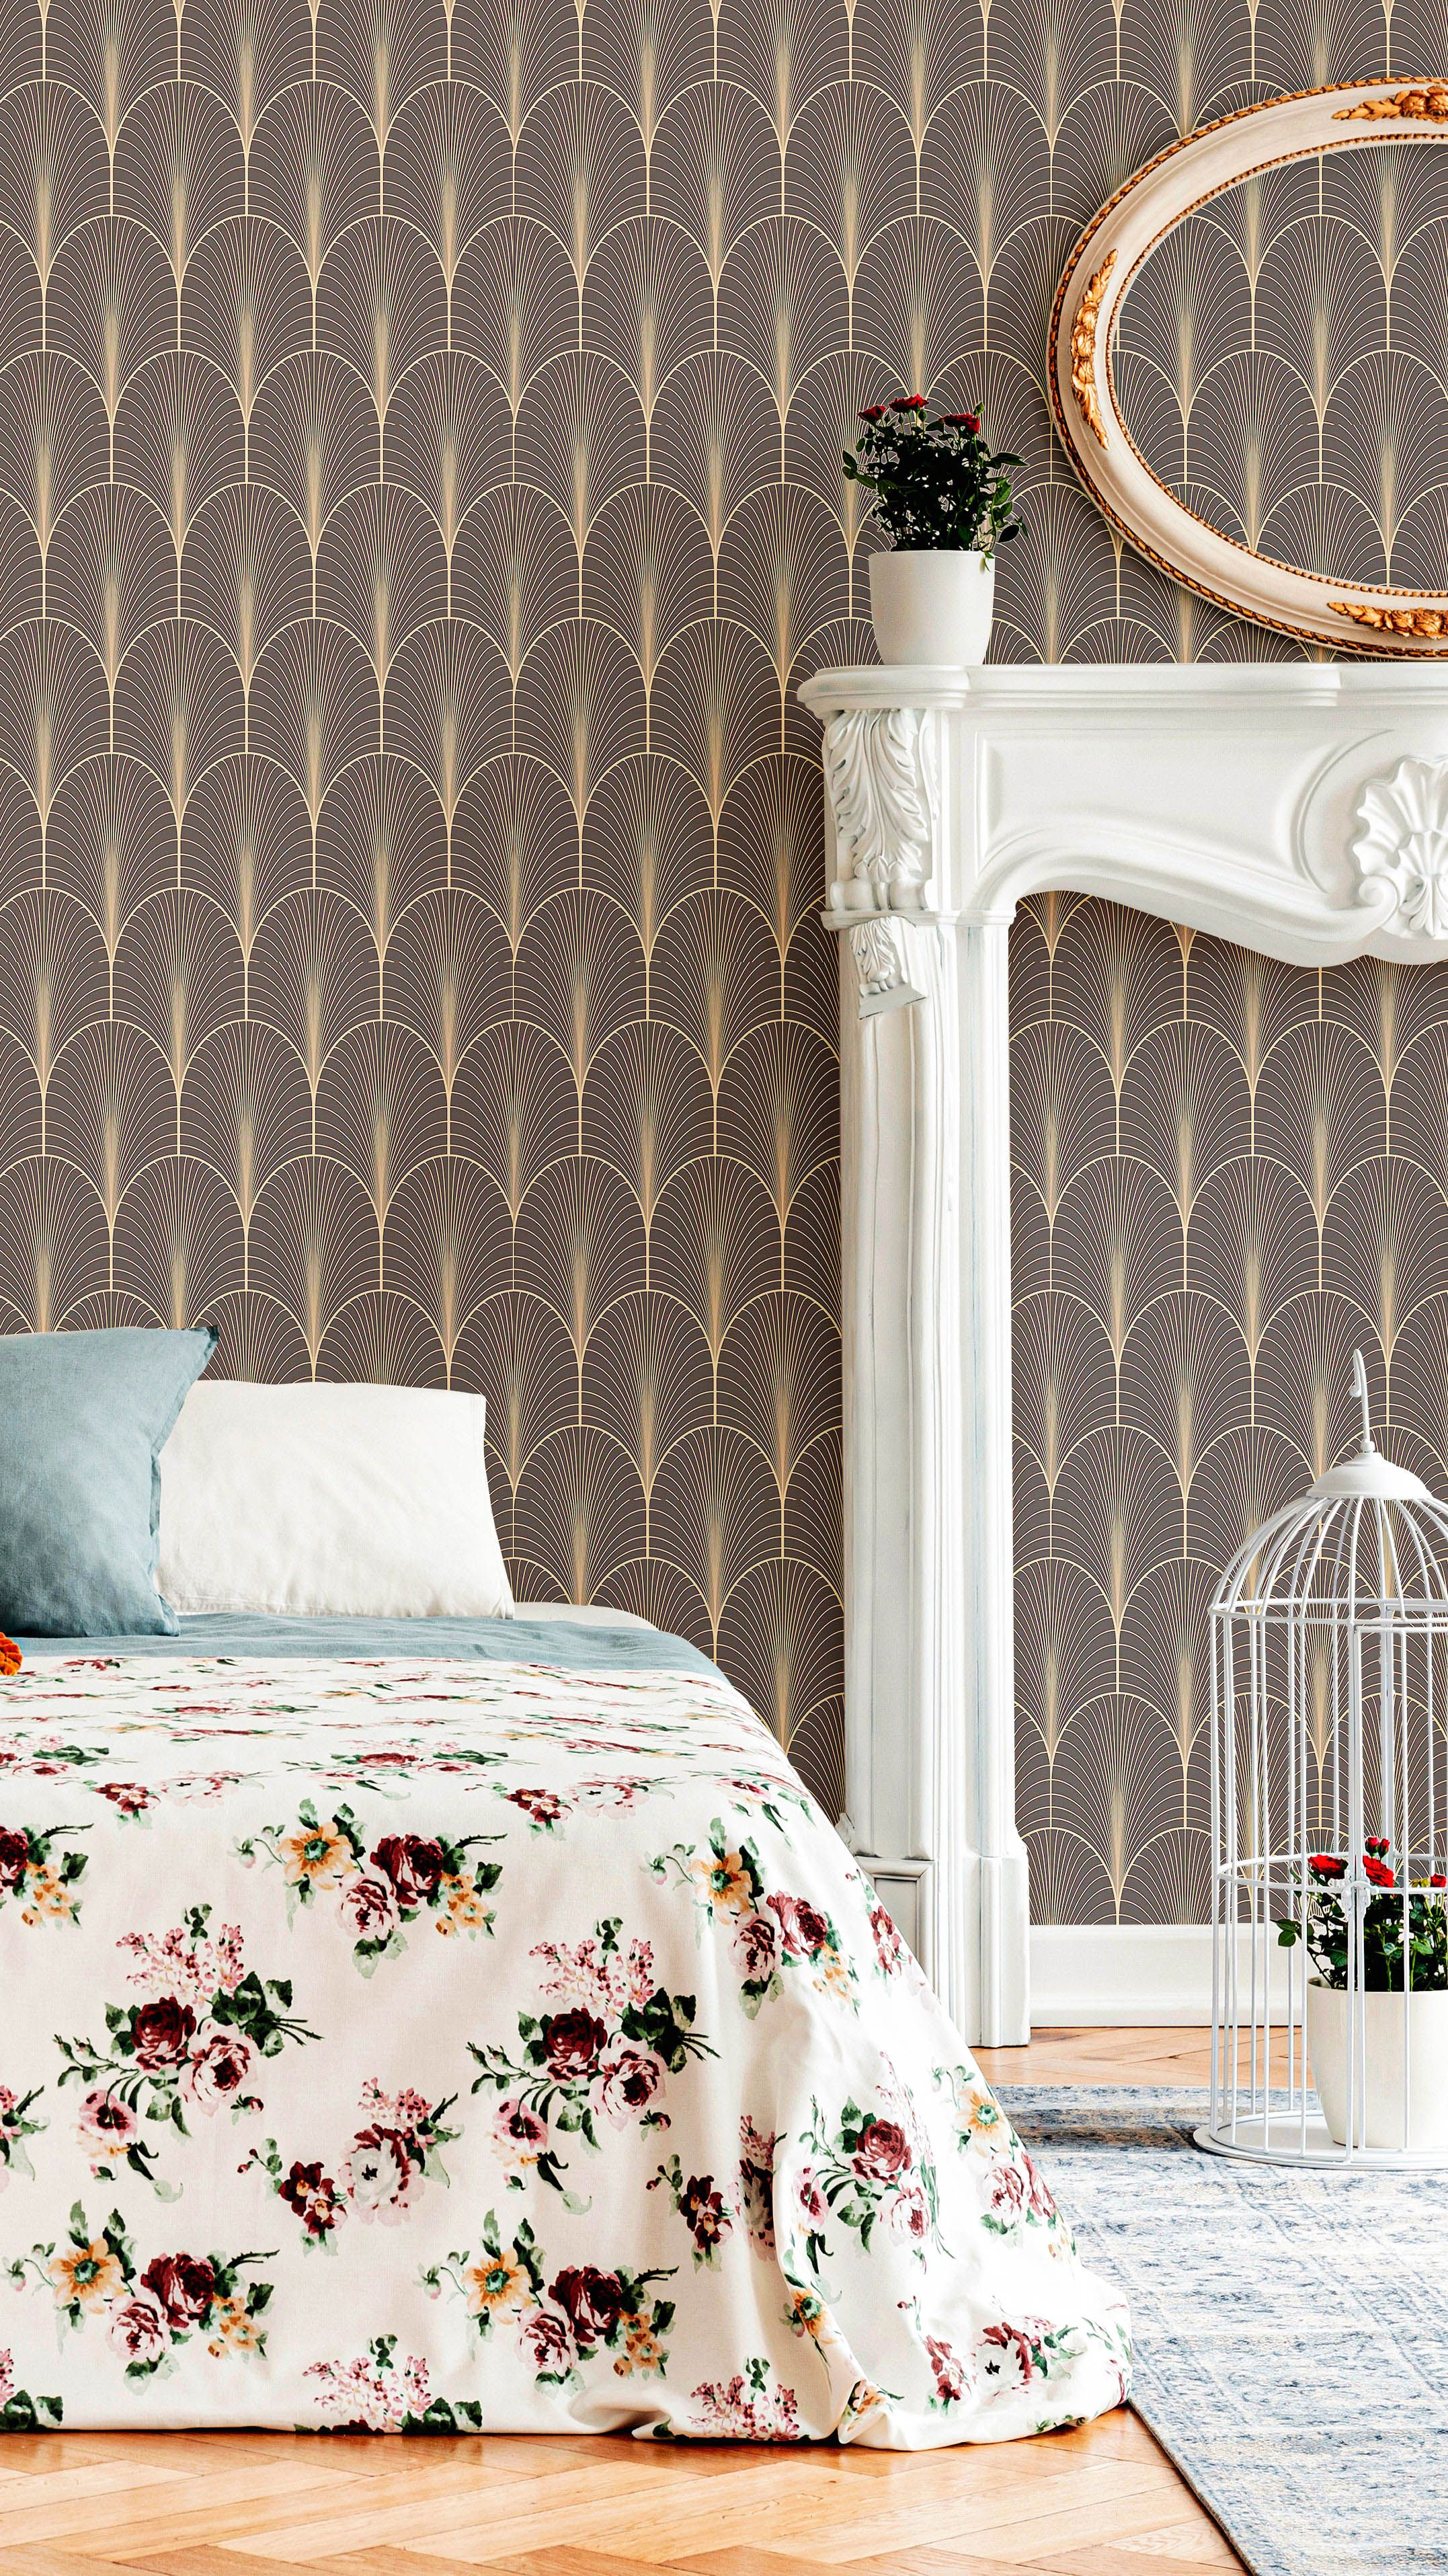 Black Arch Peel And Stick Removable Wallpaper 9934 Removable Wallpaper Bedroom Removable Wallpaper Home